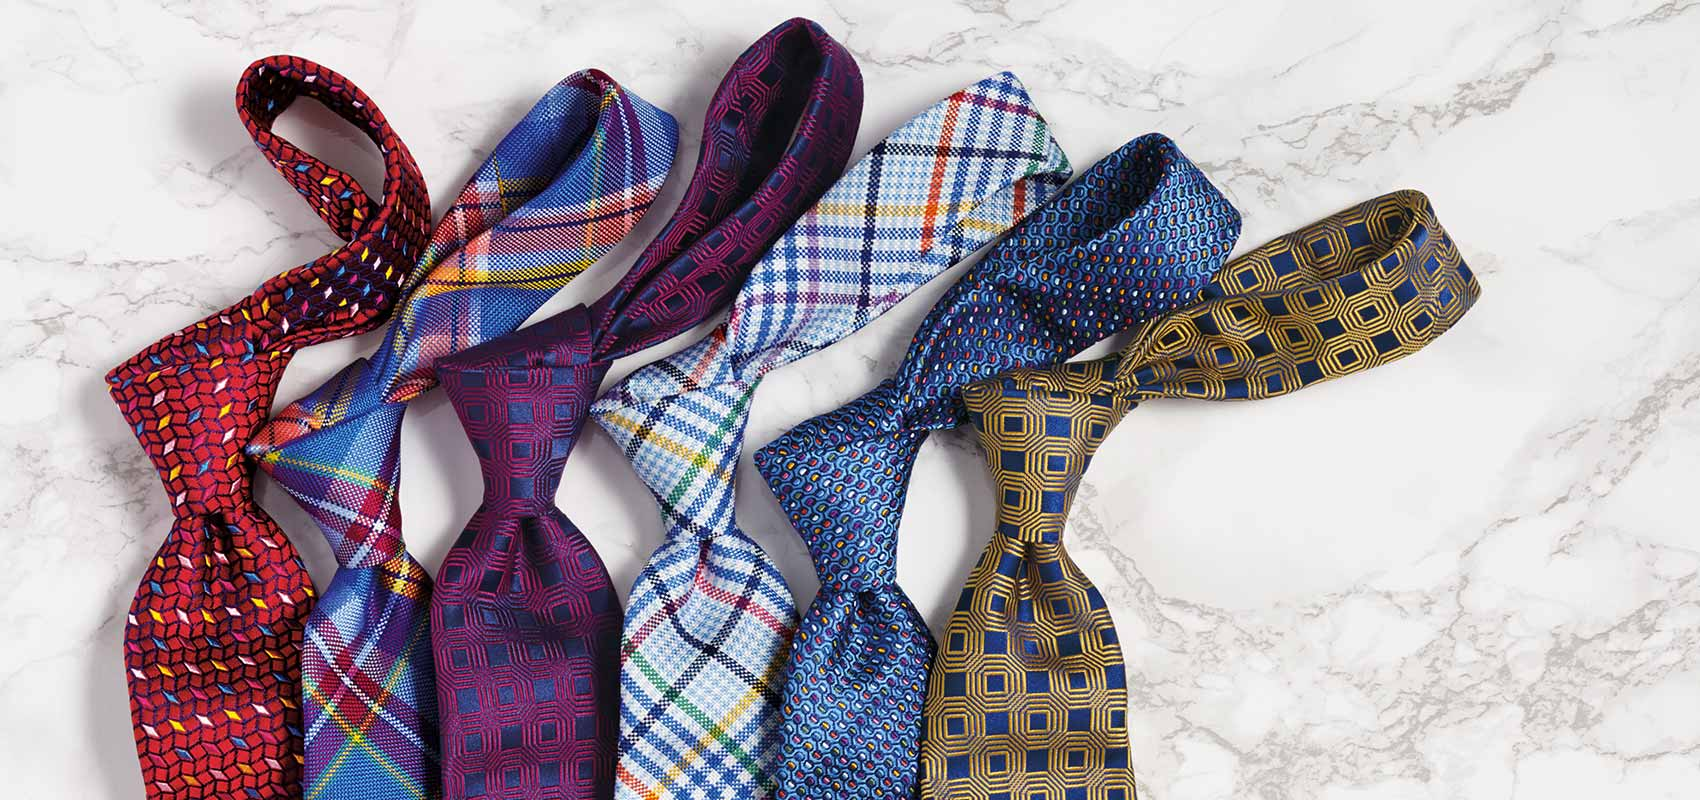 Charles Tyrwhitt men's ties